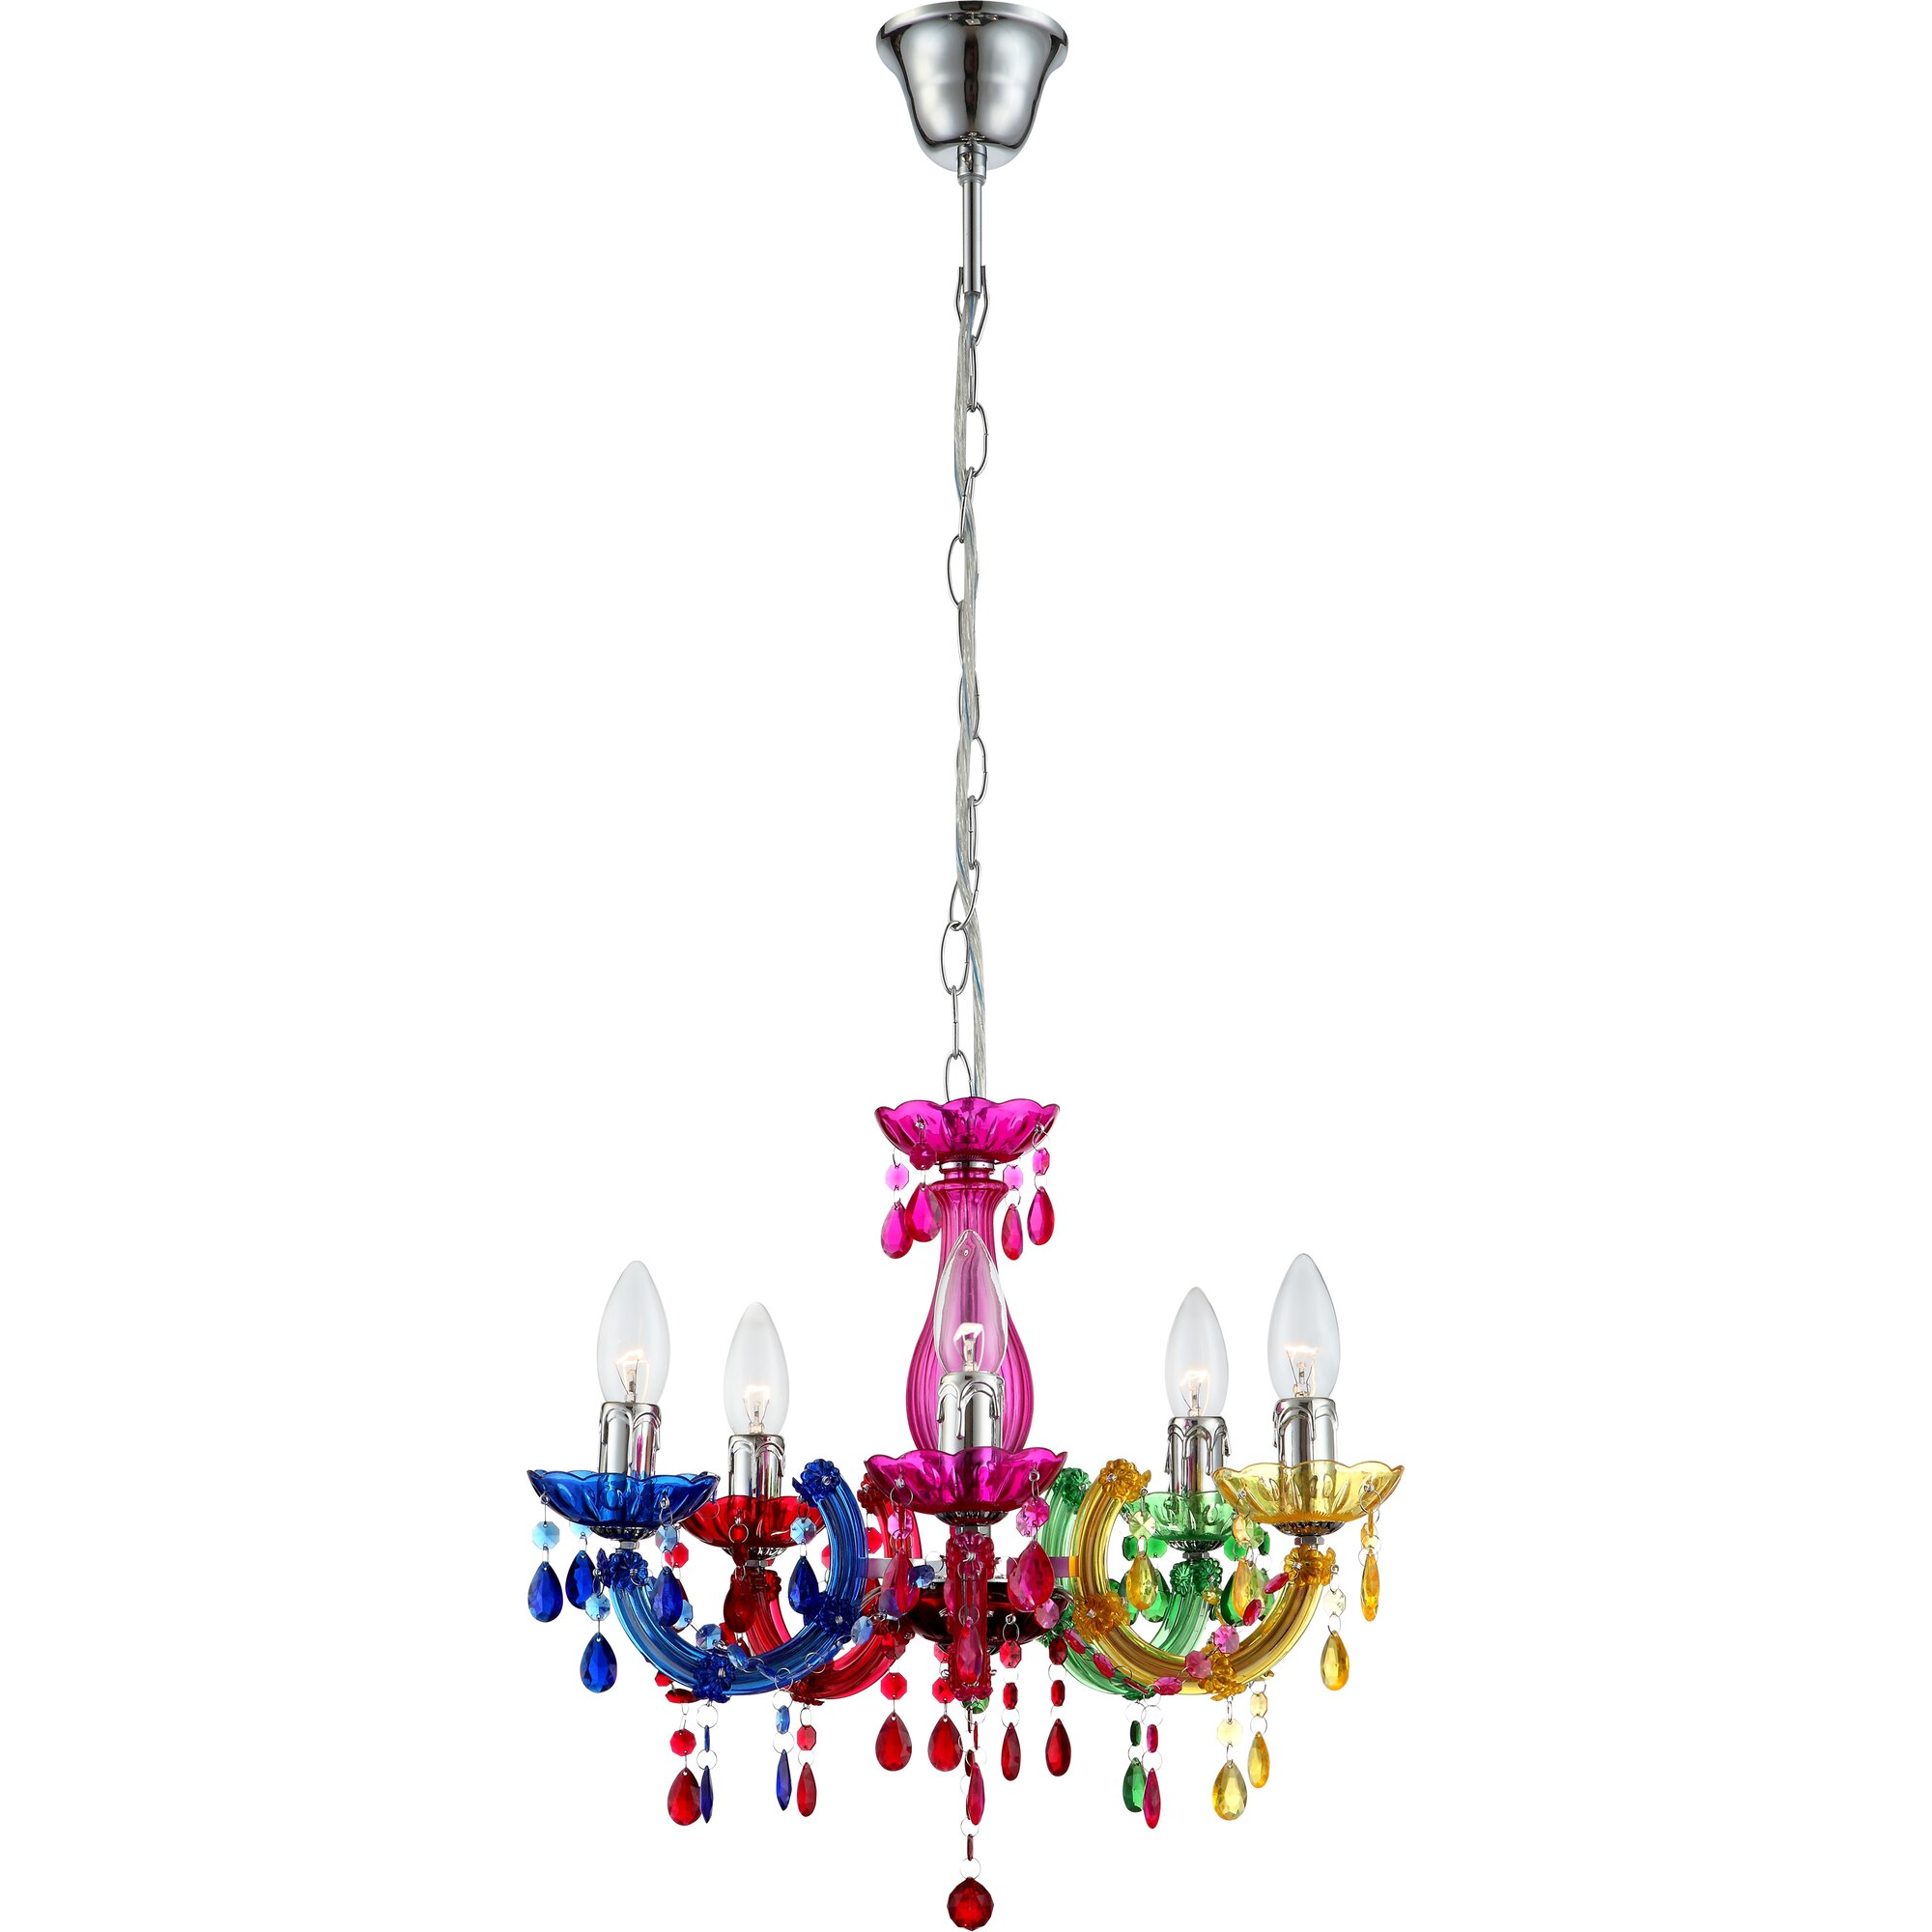 Magnificent Chandelier Online Shopping free shipping cheap mini house handmade magnificent glass pendant light modernchina mainland Chandeliers Wayfaircouk